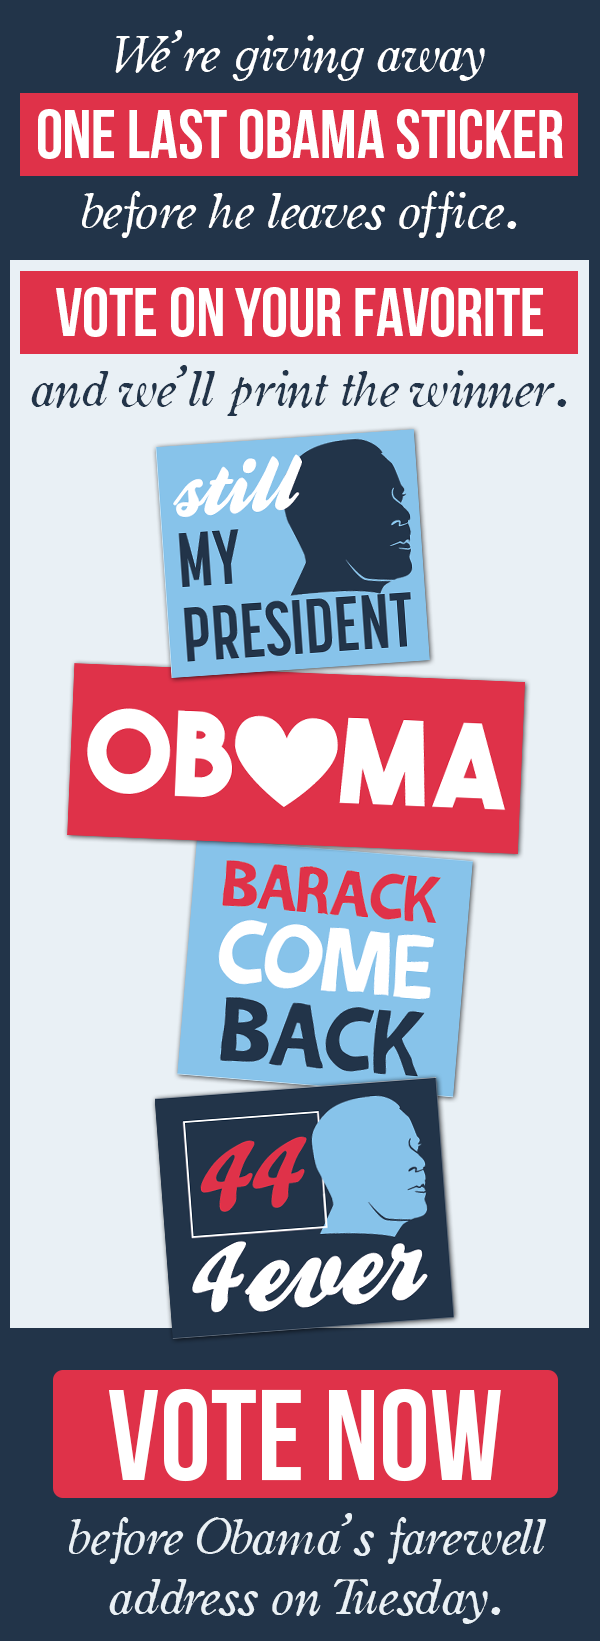 We're giving away ONE LAST OBAMA STICKER before he leaves office. Vote on your favorite and we'll print the winner. Vote now, before Obama's farewell address on Tuesday!